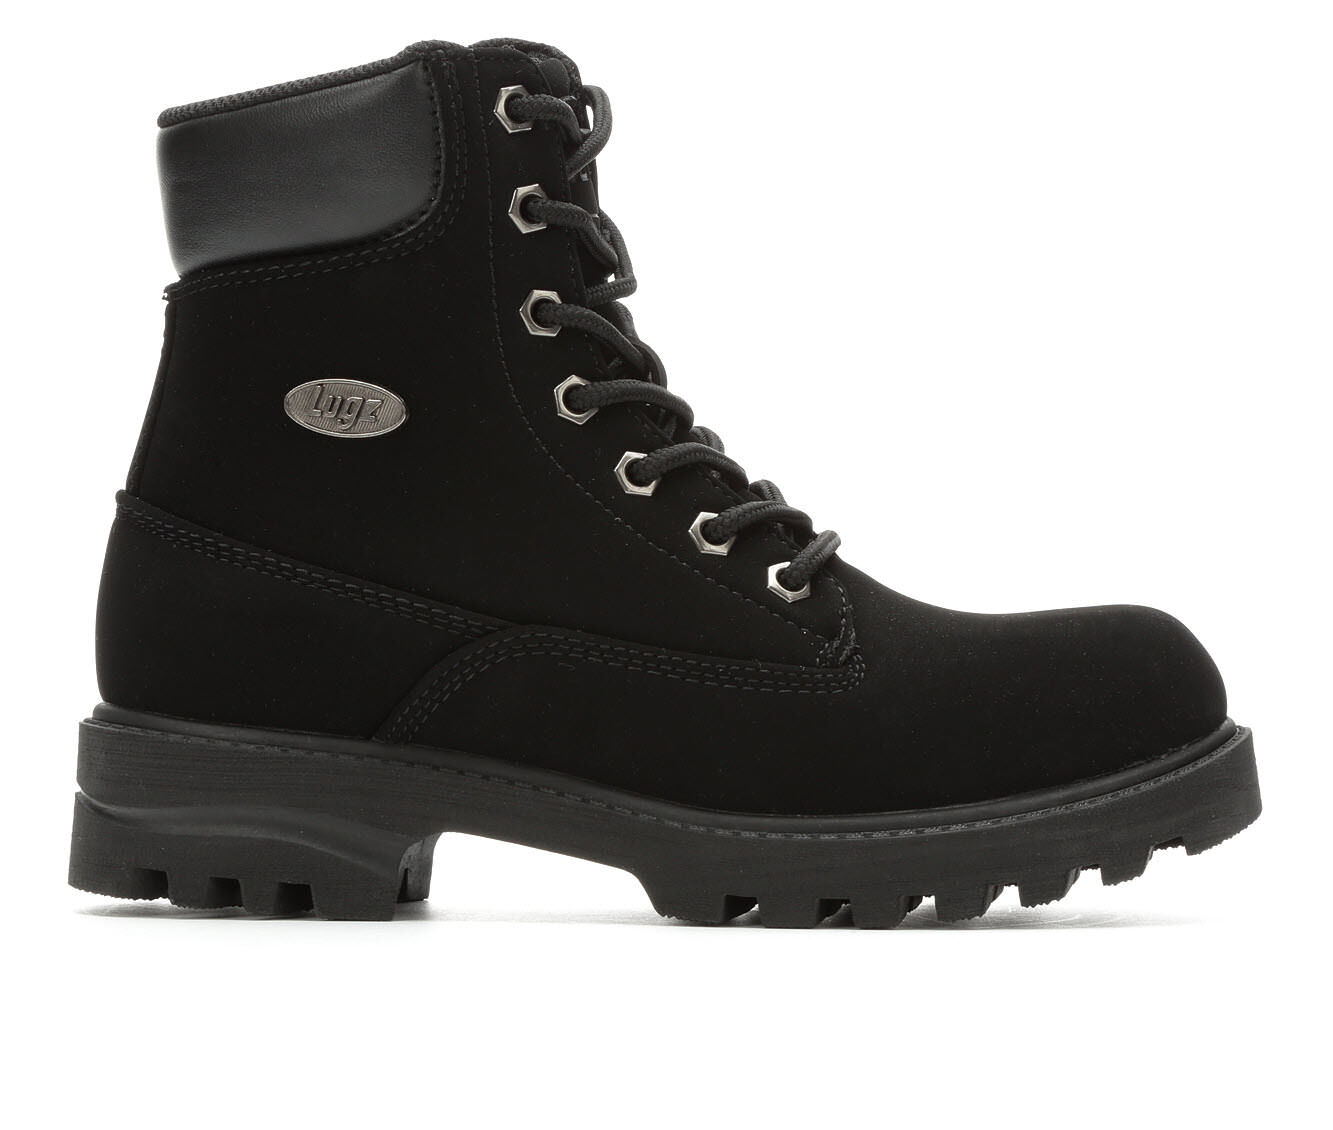 Women's Lugz Empire Hi Water Resistant Hiking Boots Black